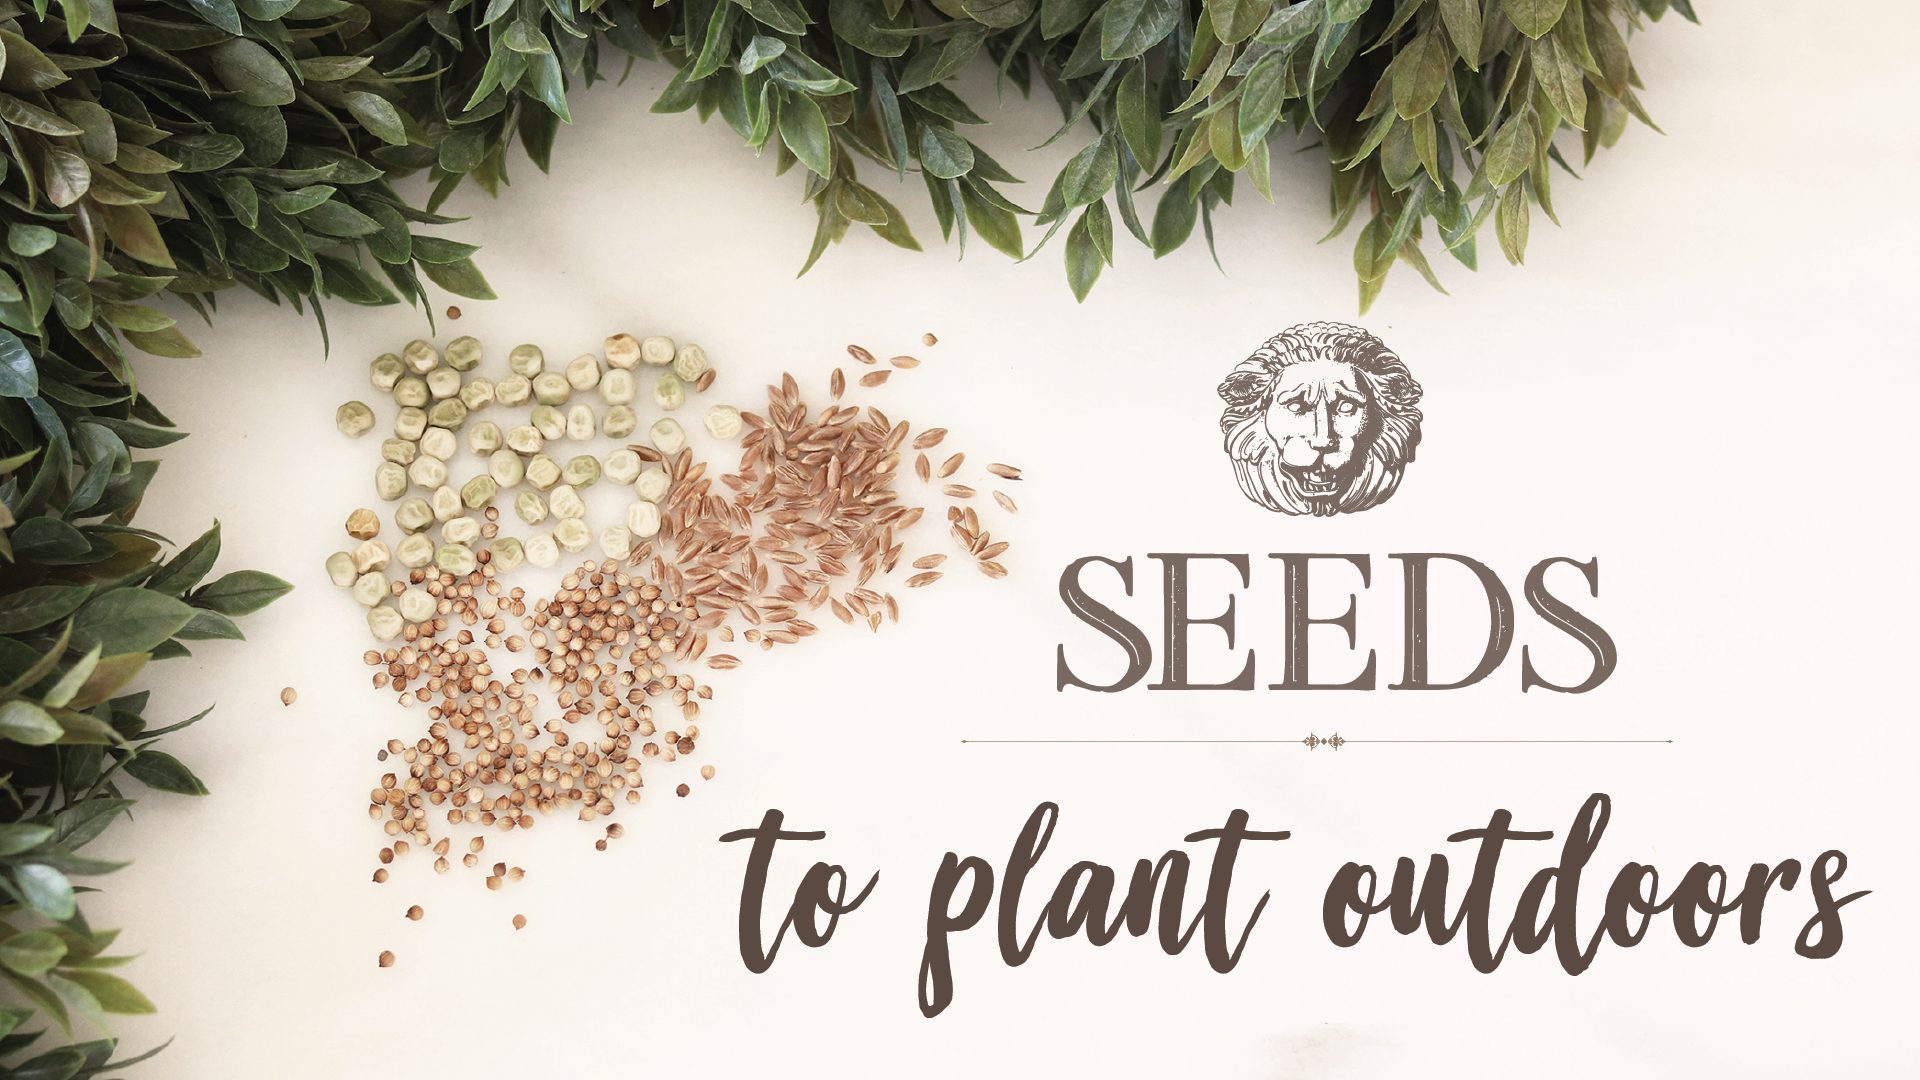 Boroughfare Home Garden Post Seeds to Plant Outdoors Image